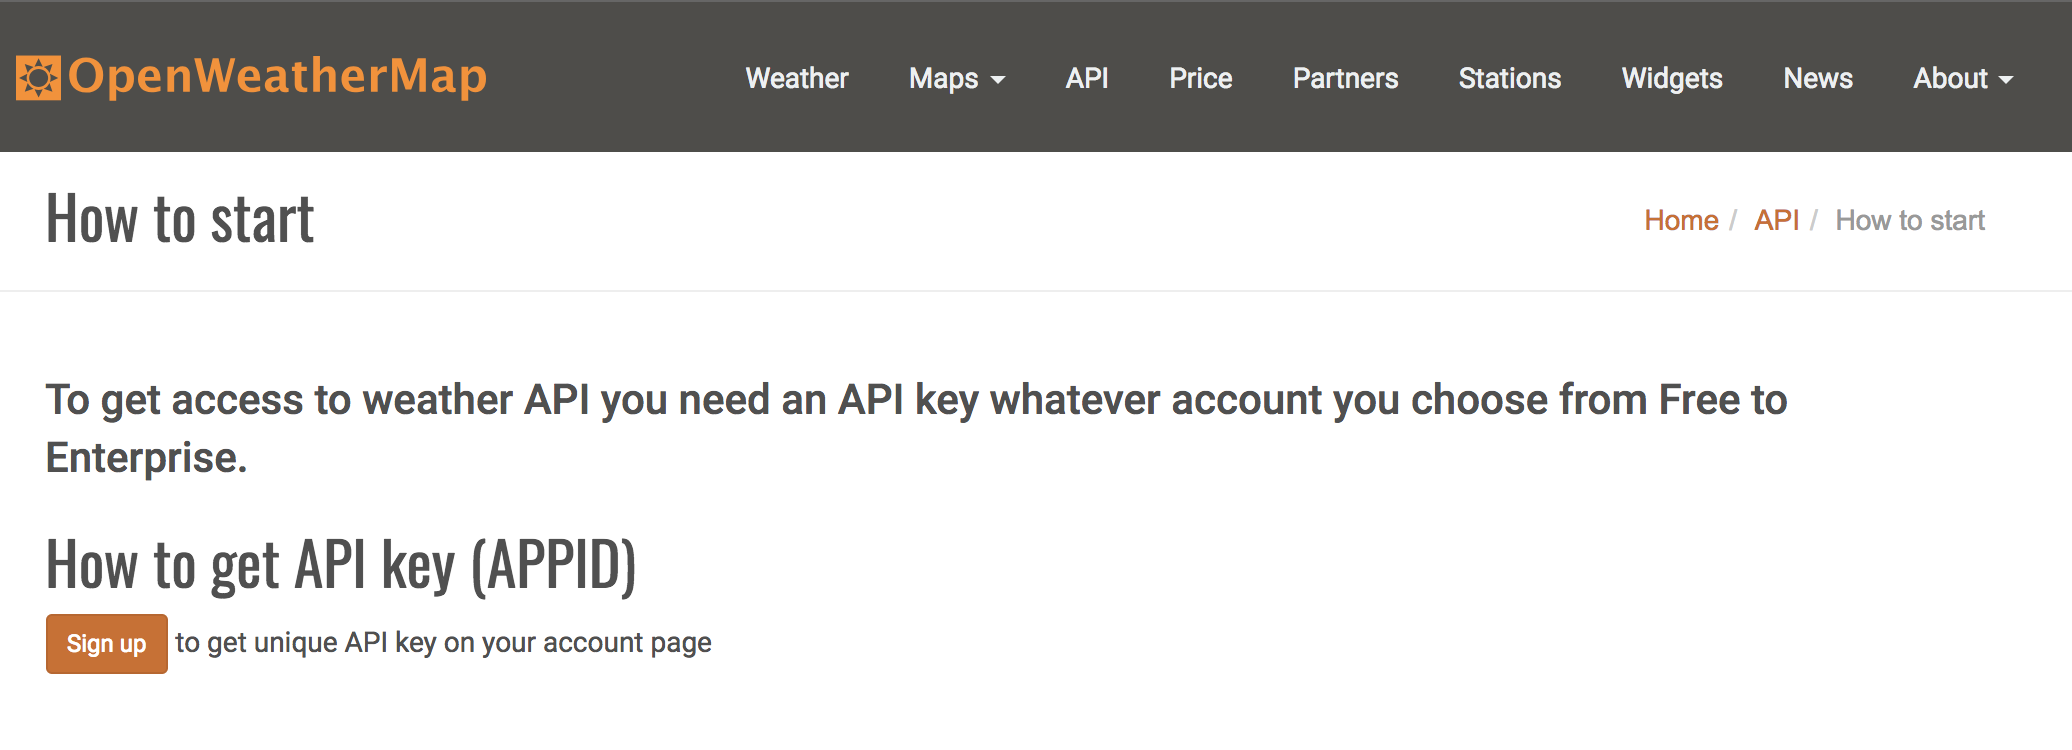 OpenWeatherMap API how to start